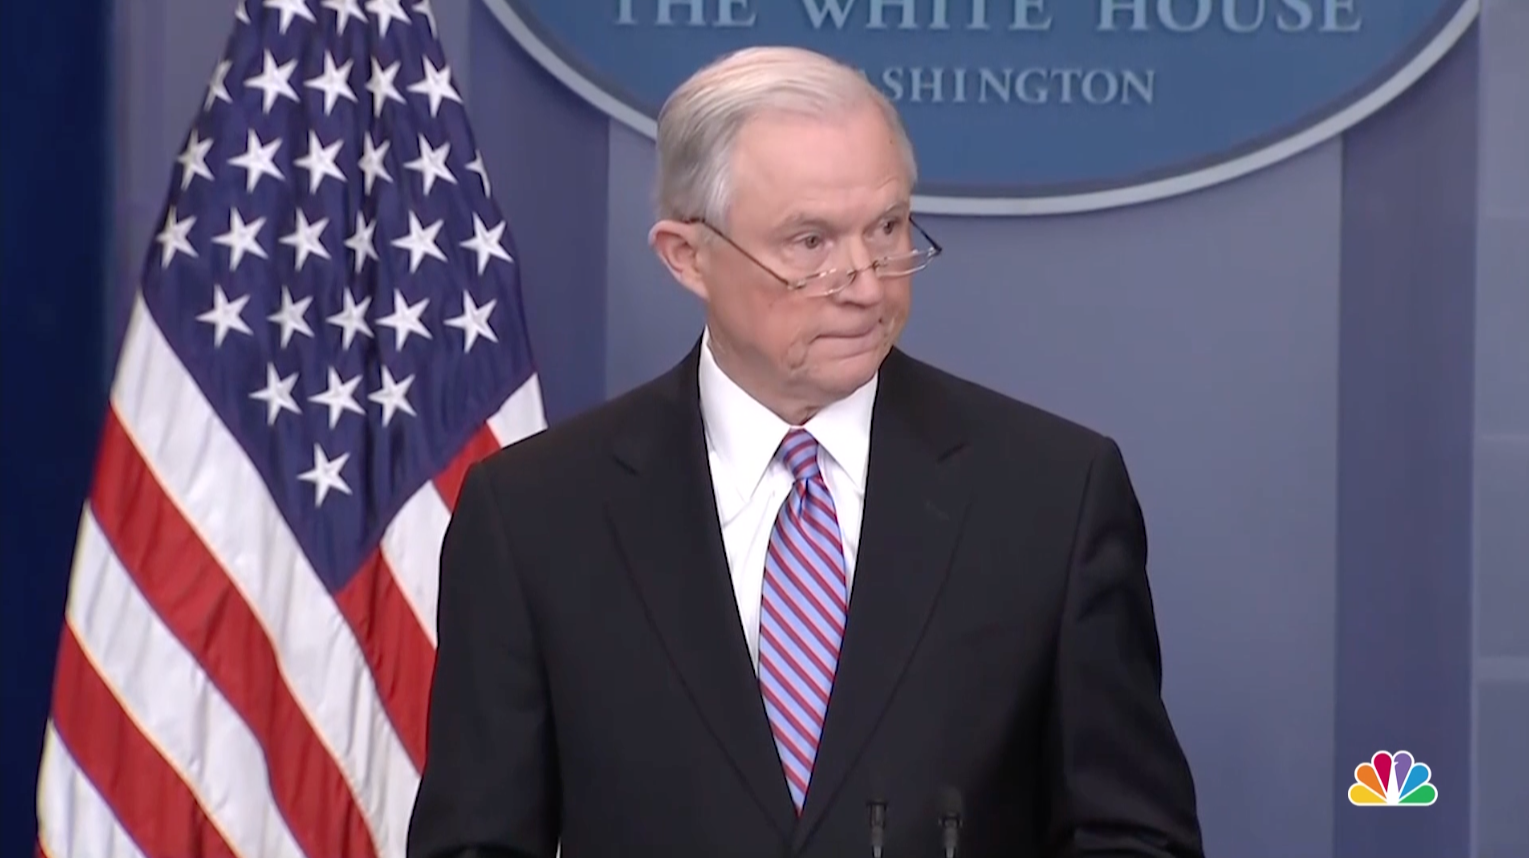 Attorney General Jeff Sessions gives a statement at the White House about sanctuary cities' federal funding on Monday, March 27, 2017.